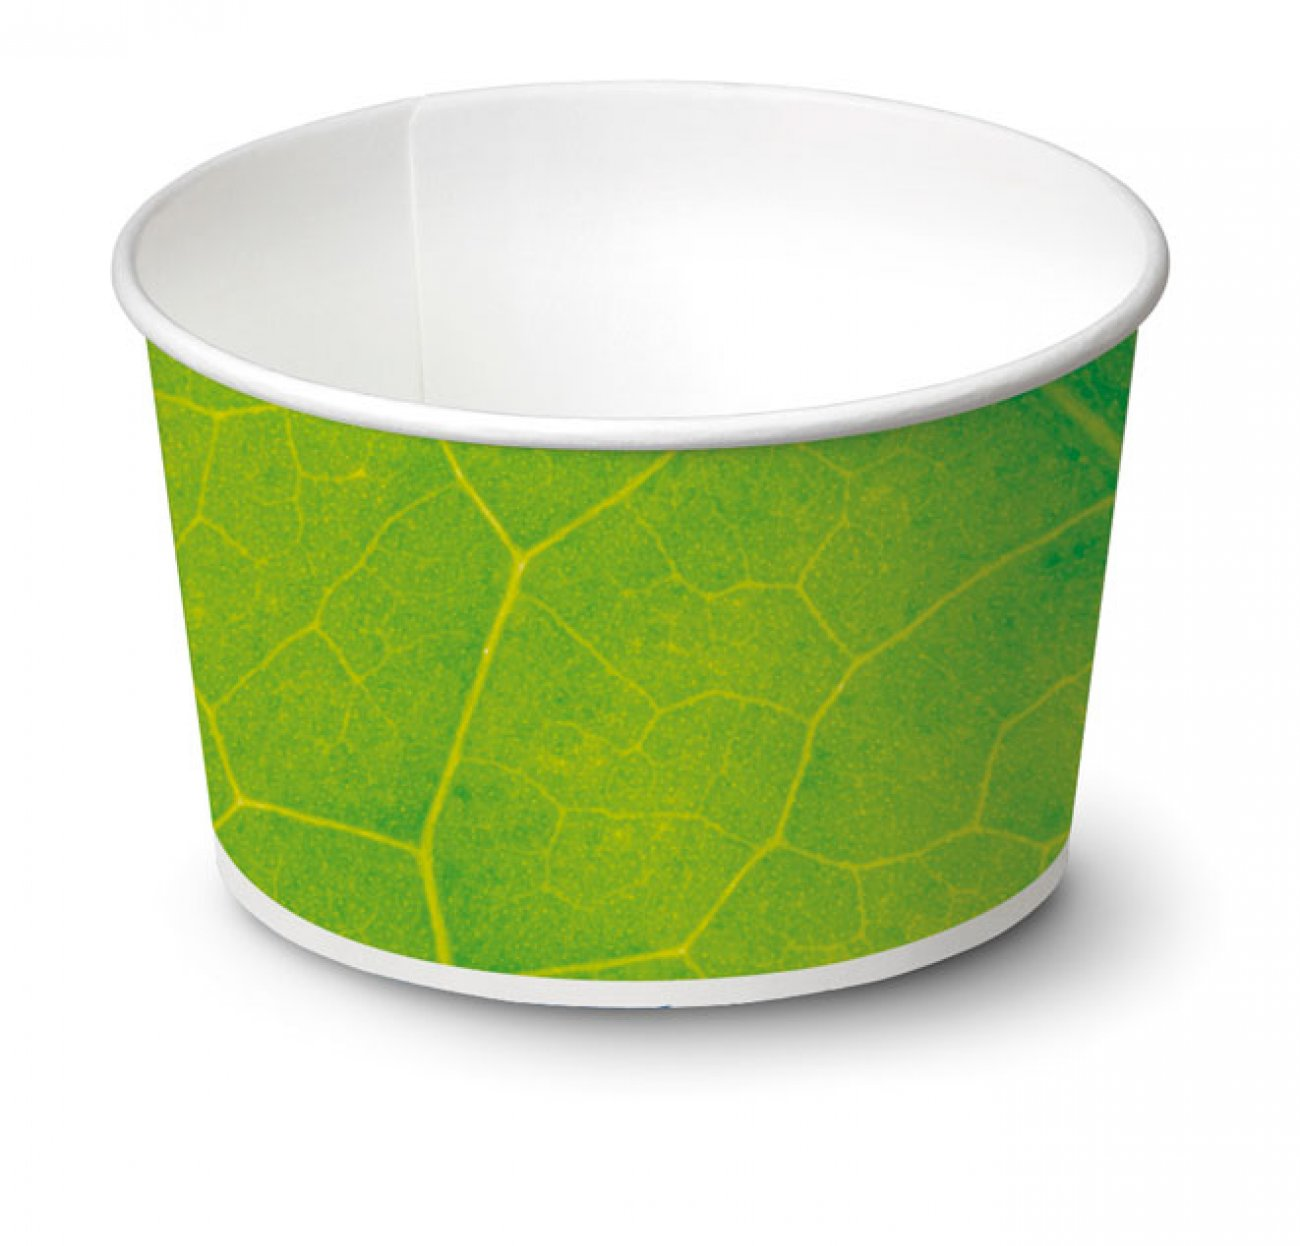 biodegradable Ice cream cup / Typ 80 / 1.932 pieces - Ice cup biodegradable paper